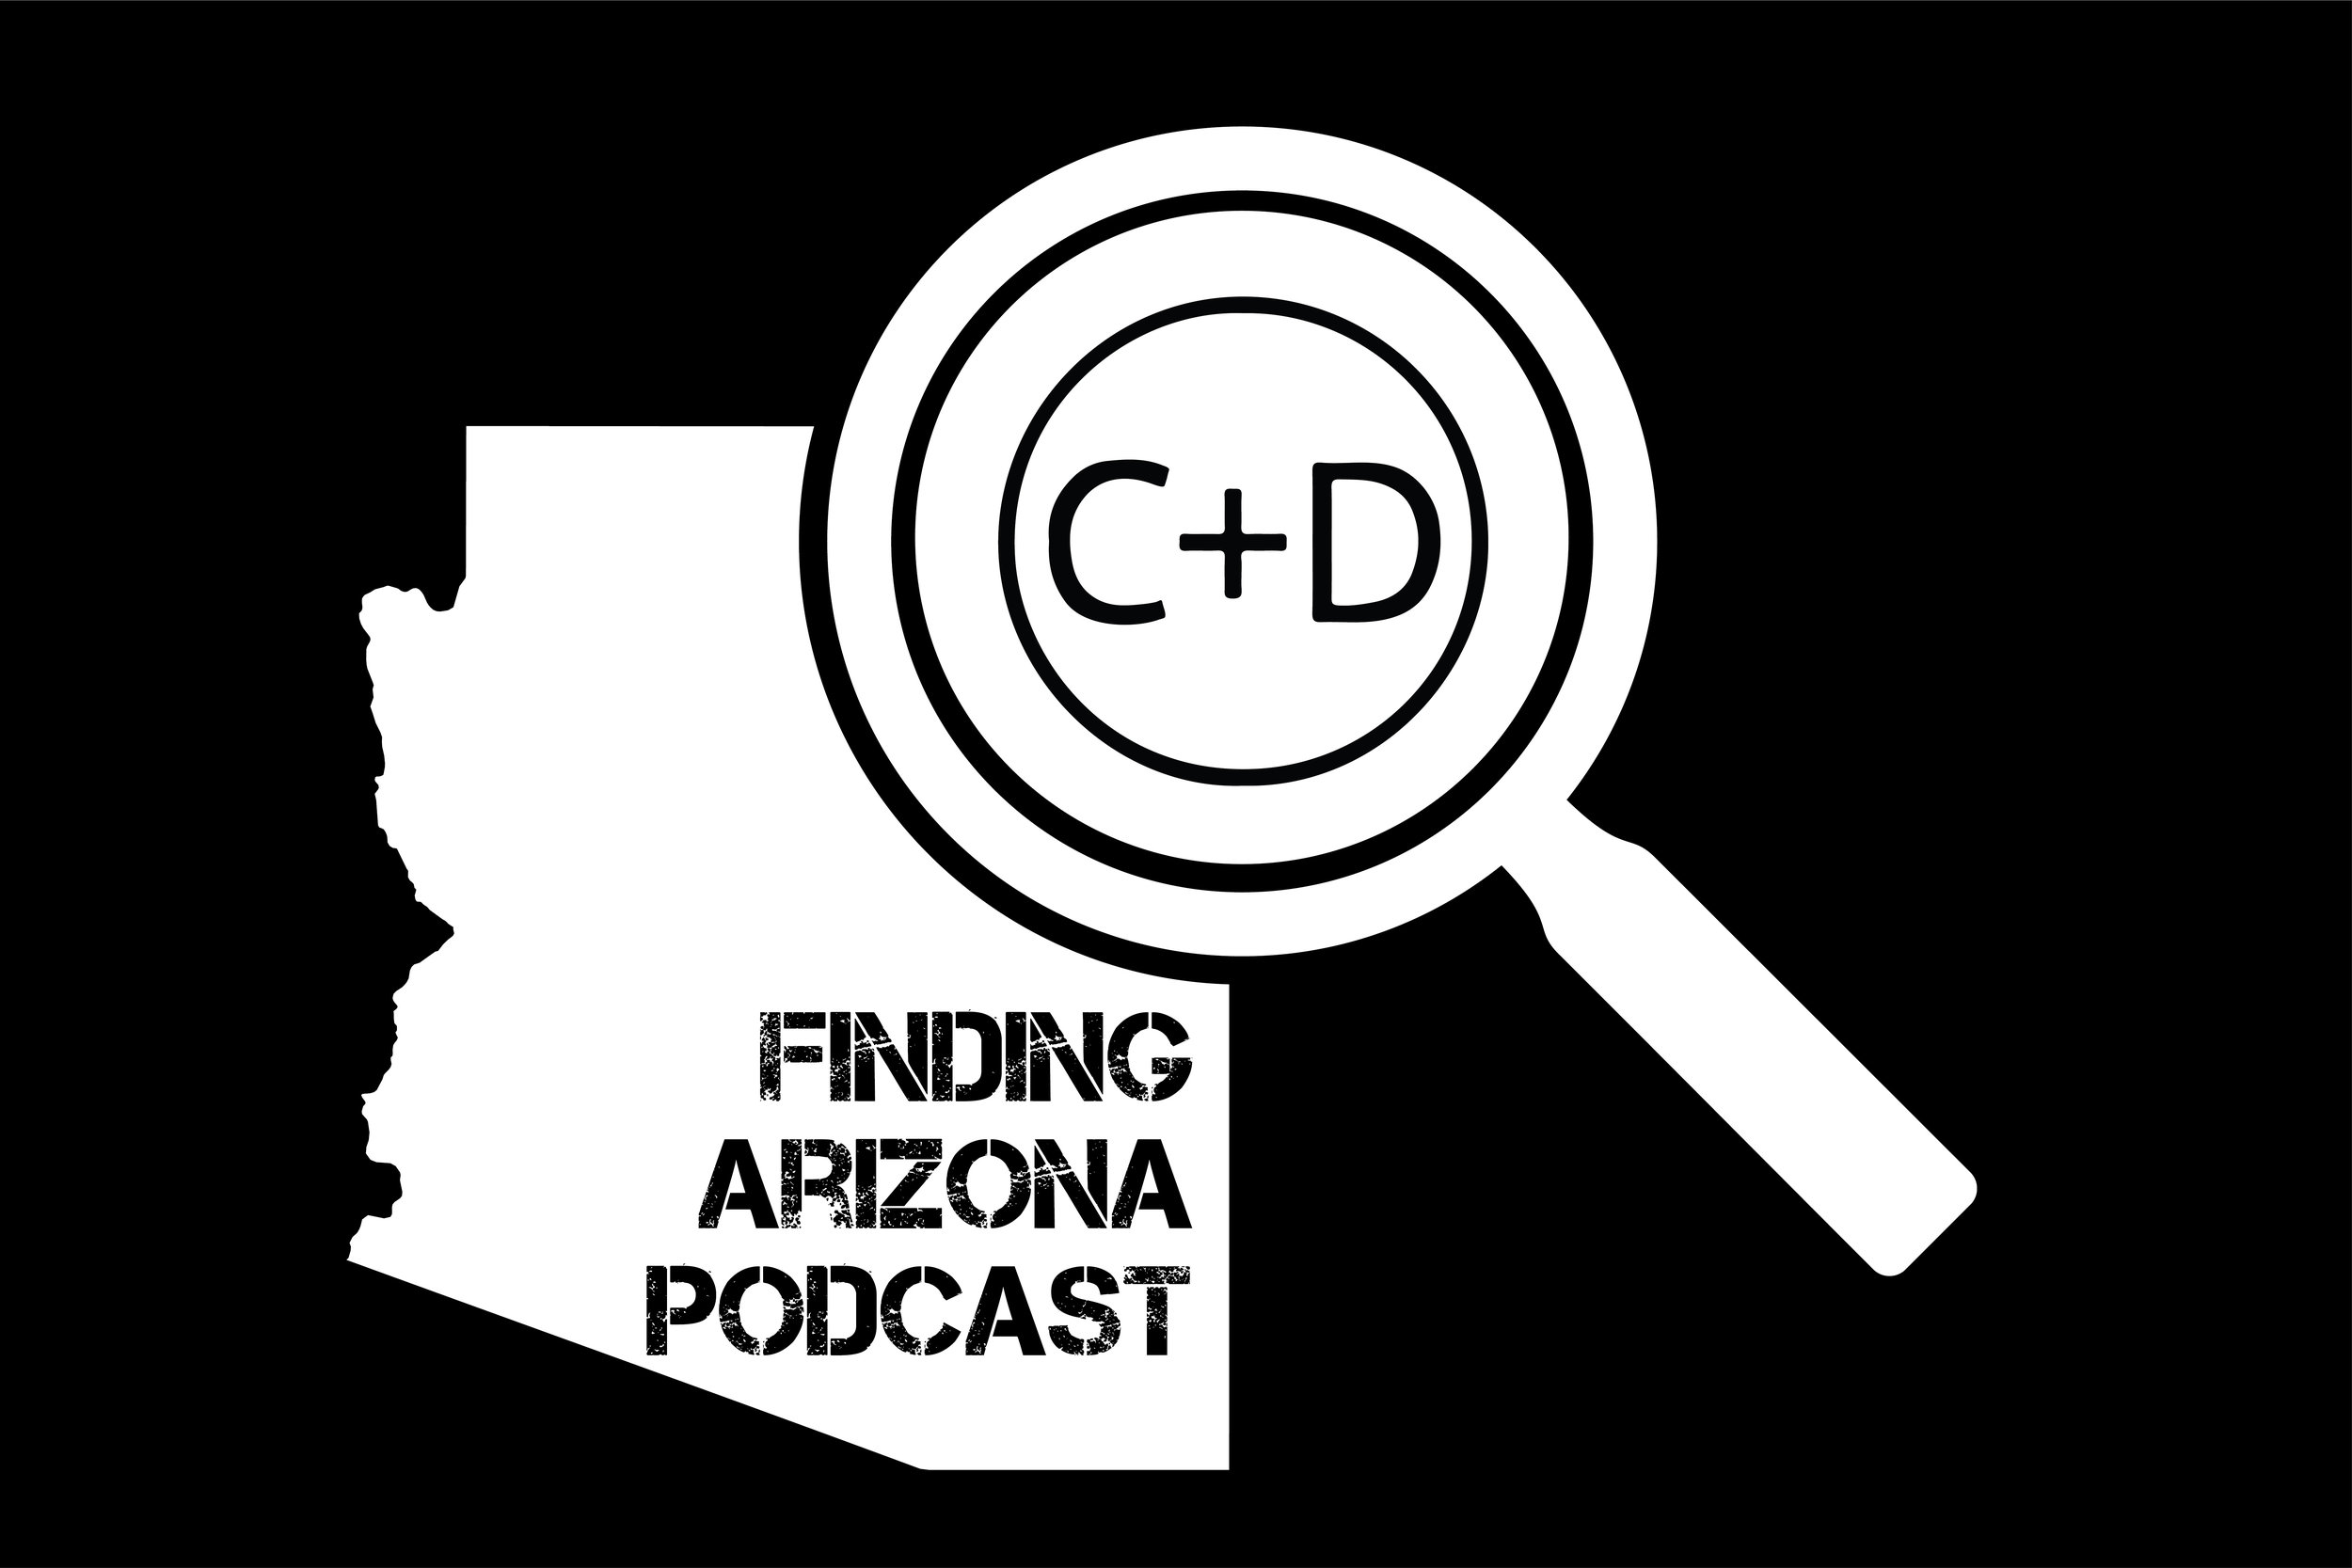 PodCastLogo-C+D-06.jpg